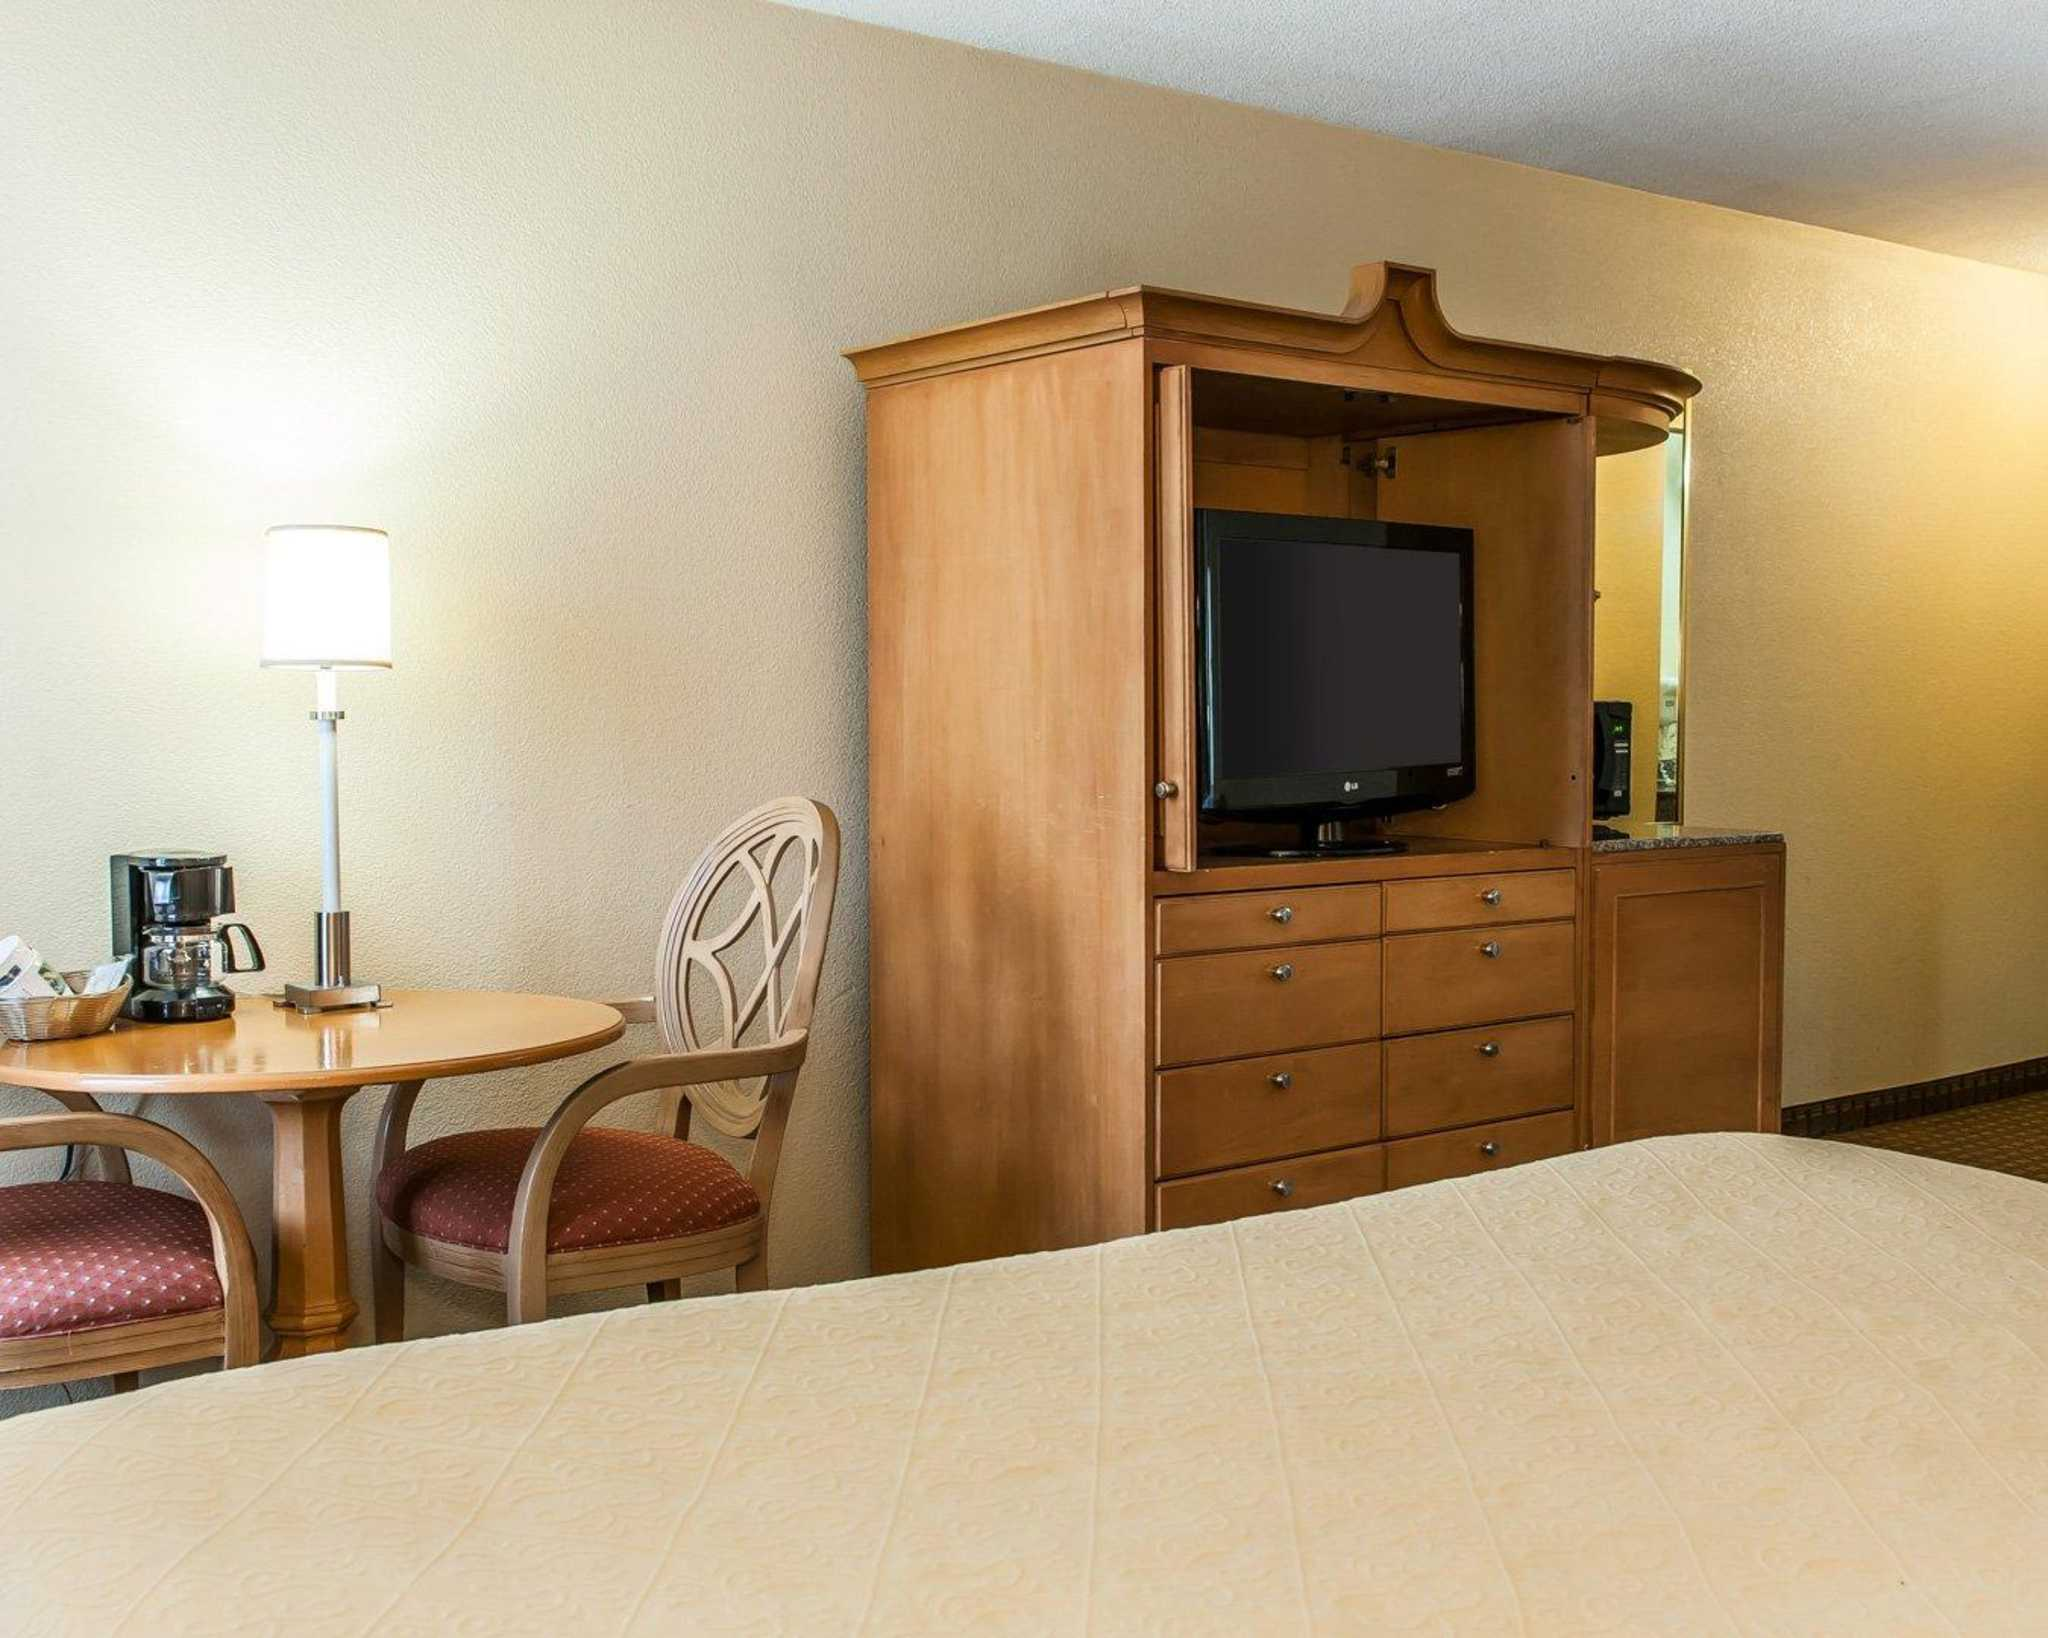 Quality Inn & Suites Shelbyville I-74 image 5